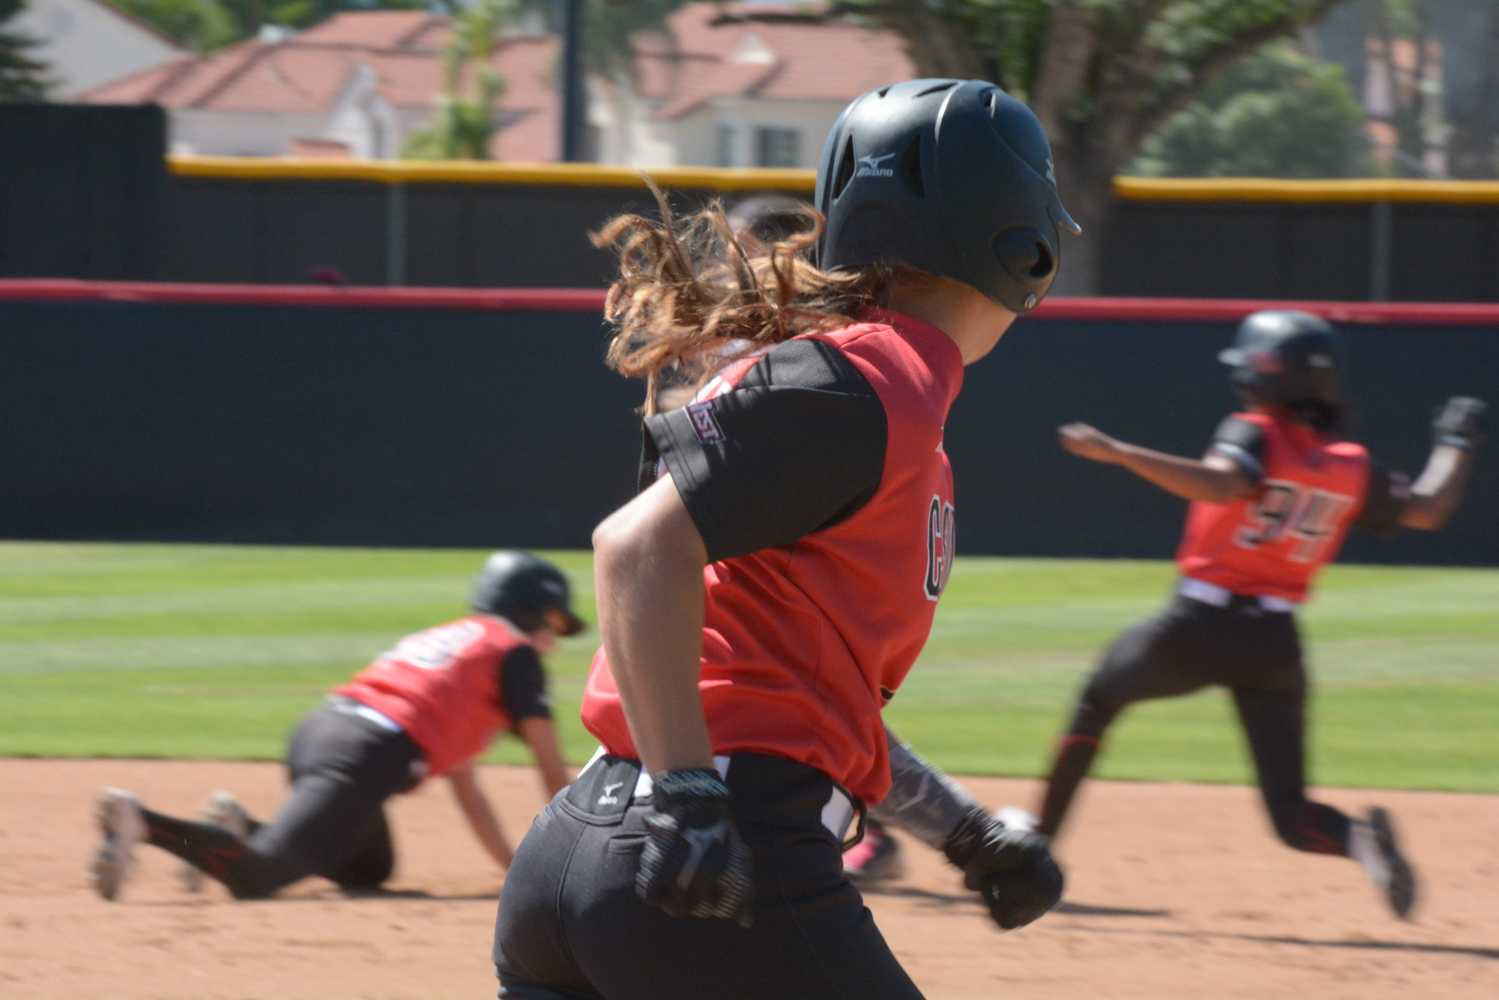 CSUN+softball+players+try+to+get+on+base+during+their+series+games+against+the+University+of+Hawai%27i.+Allen+Natian%2FContributor